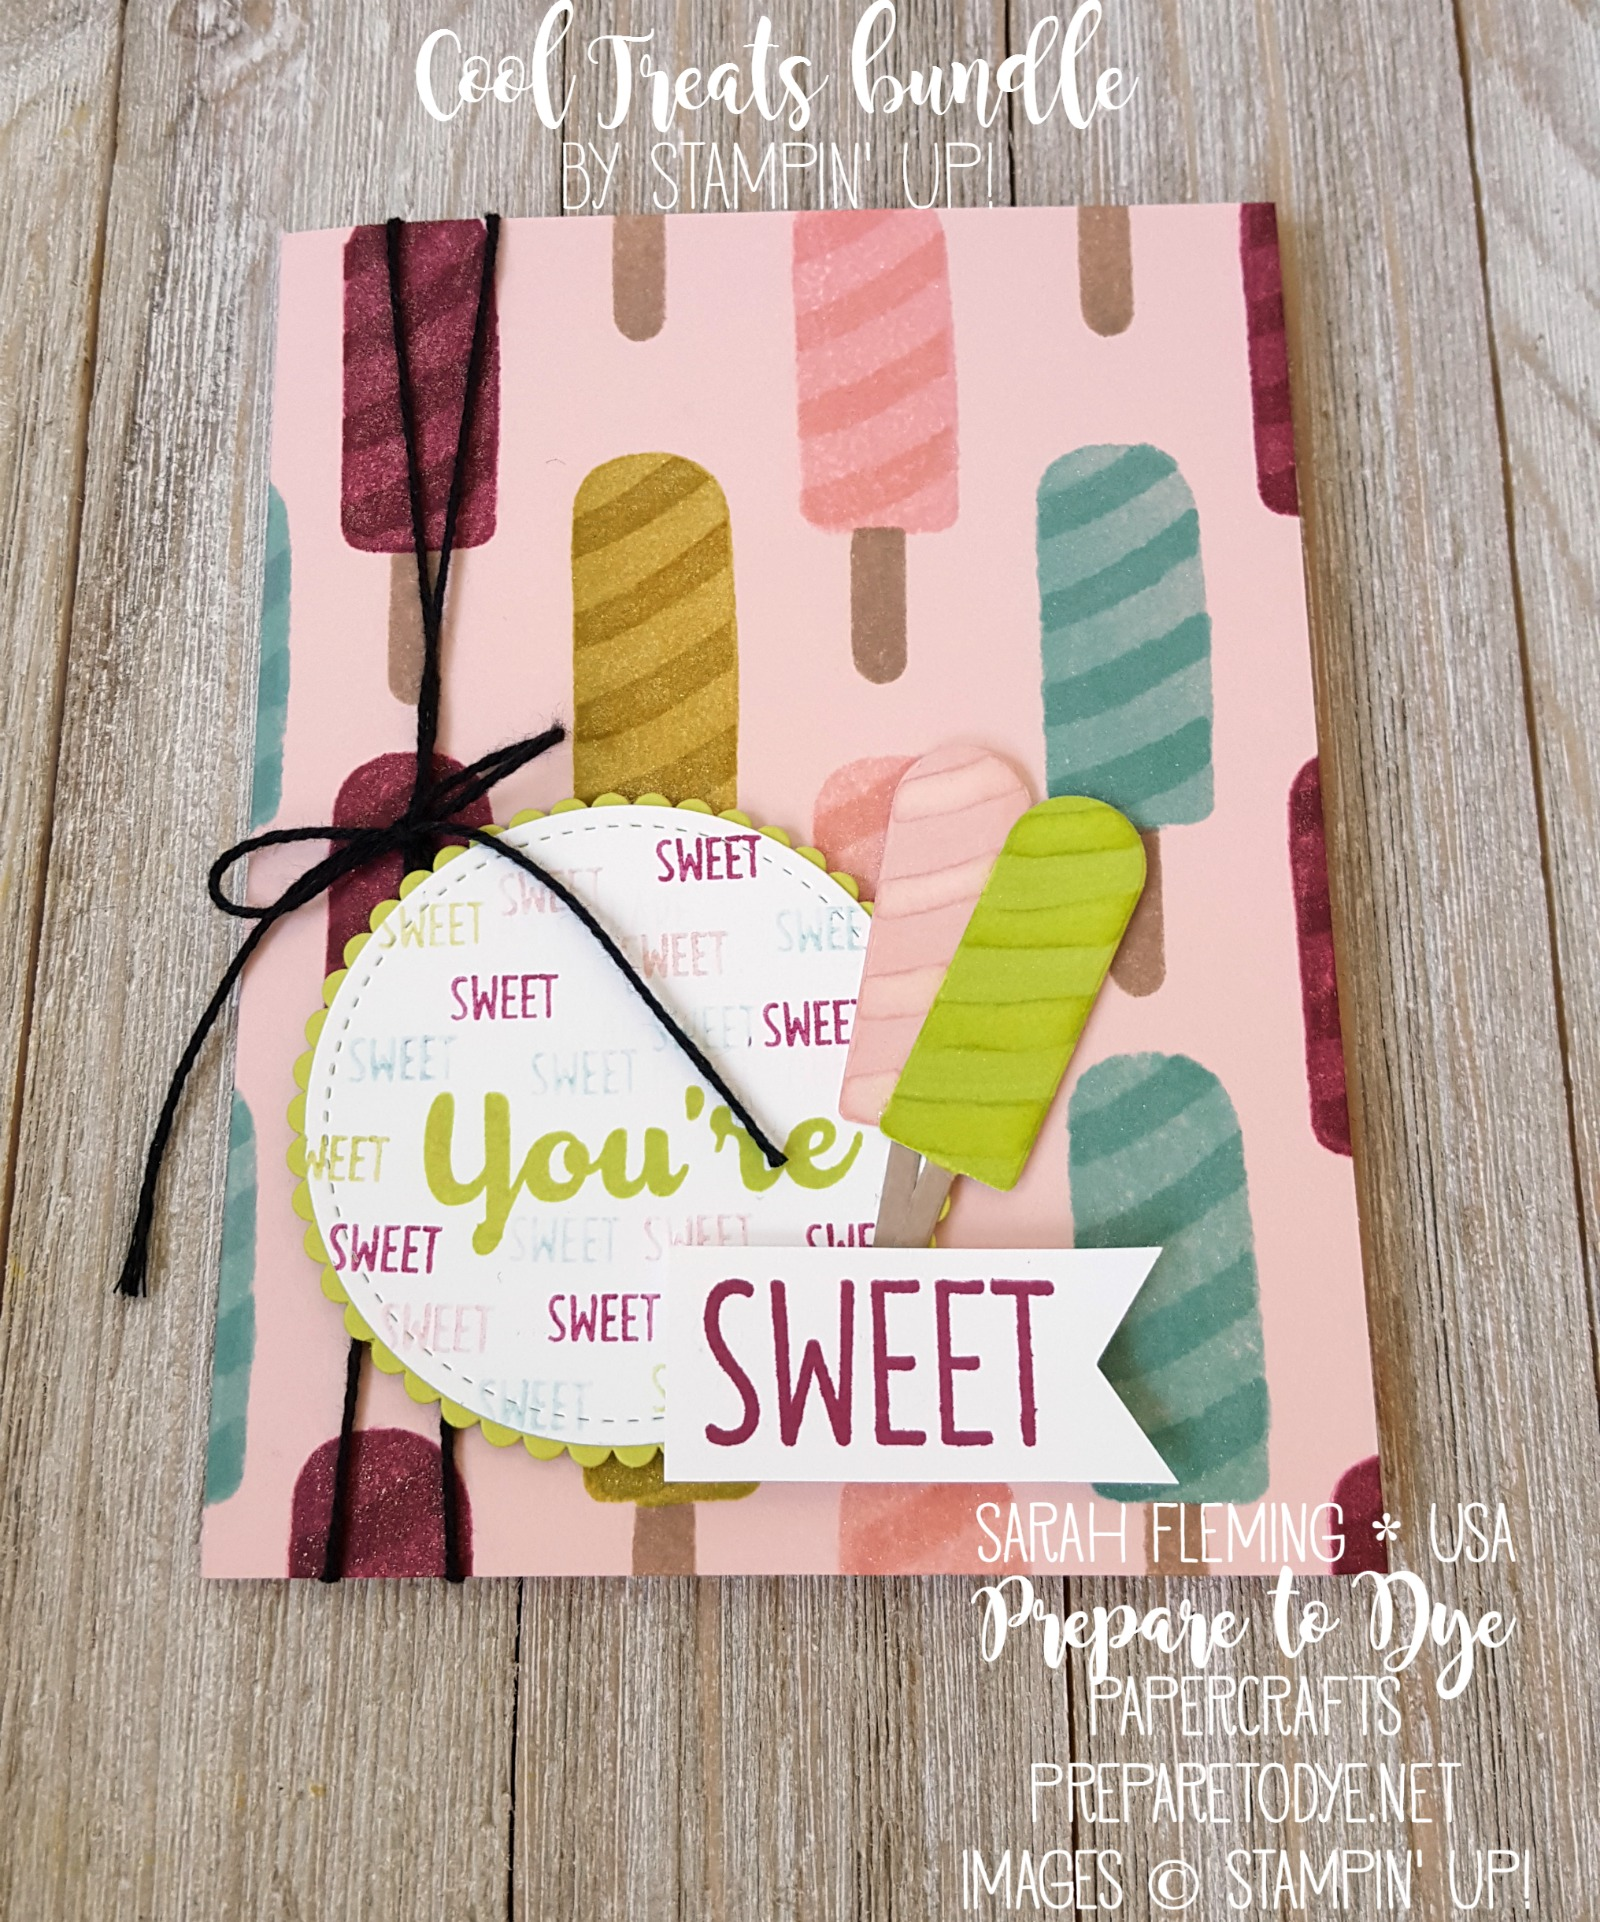 Stampin' Up! Cool Treats bundle with Stitched Shapes and Layering Circles framelits - handmade popsicle card - Splitcoast Stampers Creative Crew May 2017 - Sarah Fleming - Prepare to Dye Papercrafts